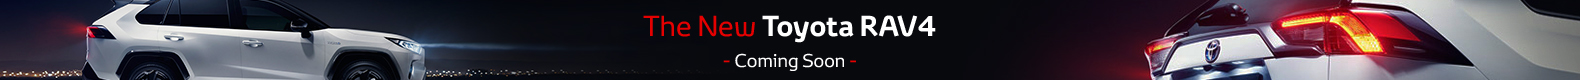 Rav4 2019 Coming Soon